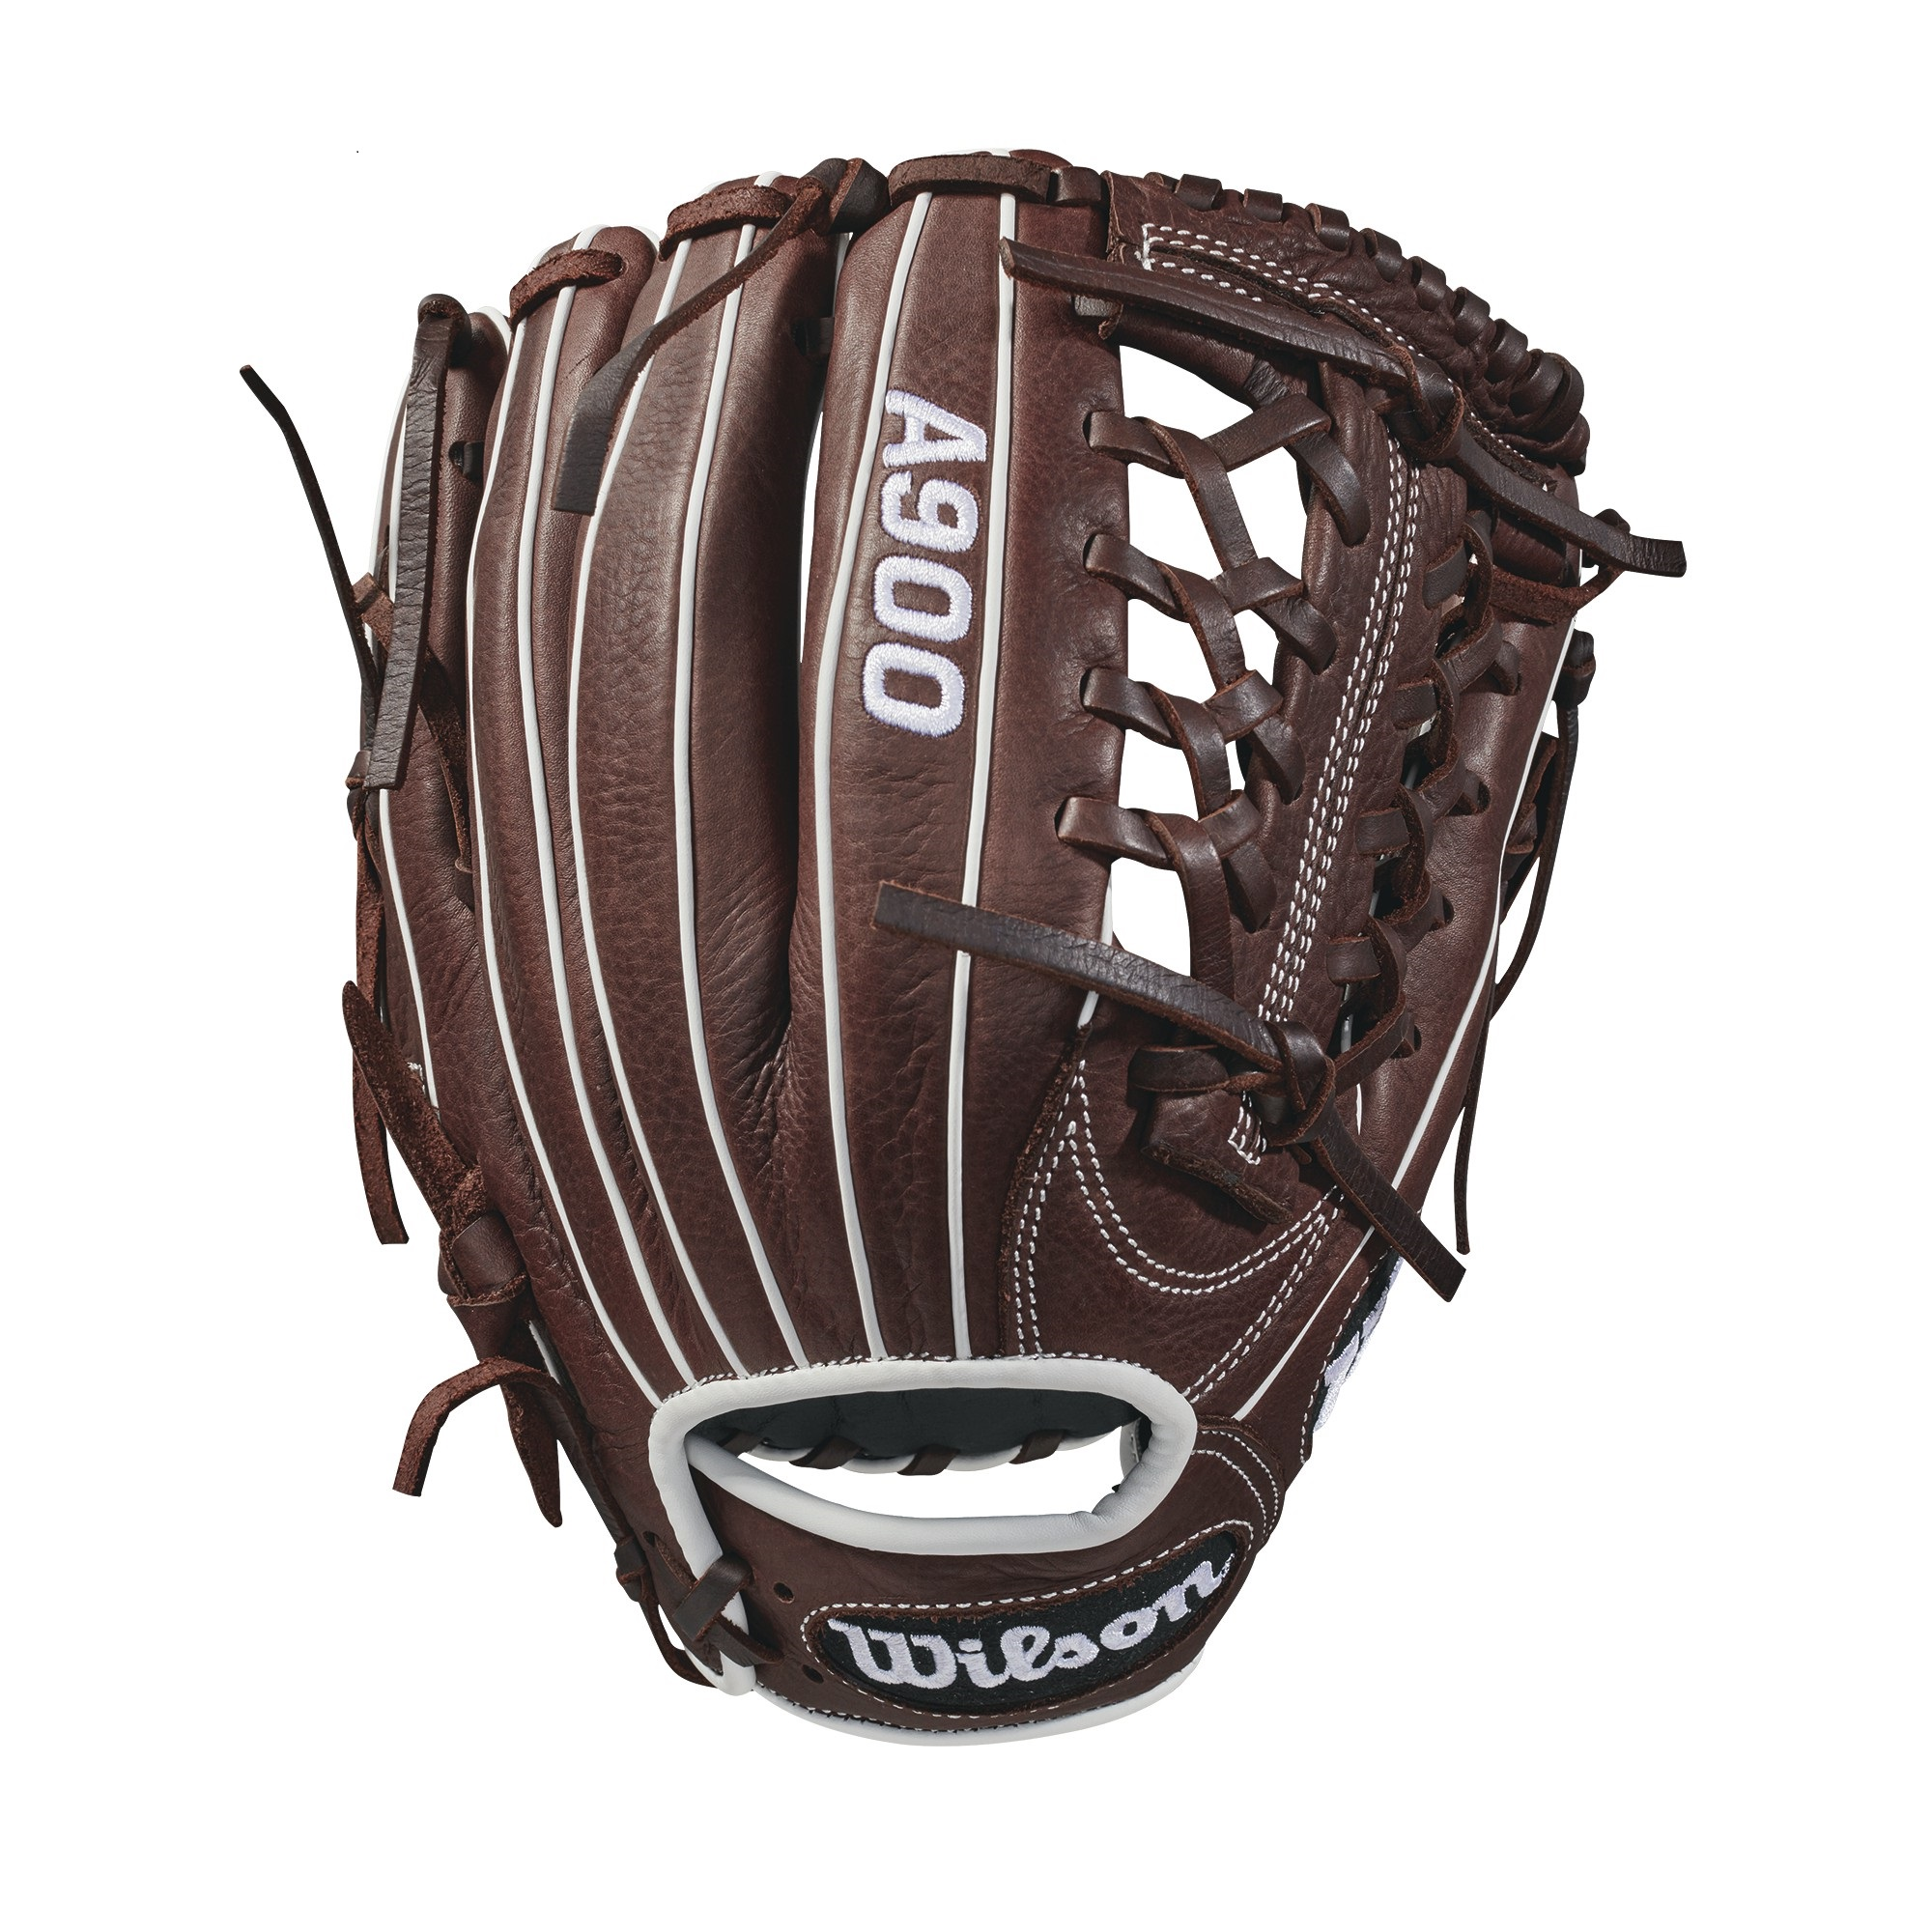 "Wilson 11.75"" A900 Series Baseball Glove, Left Hand Throw"